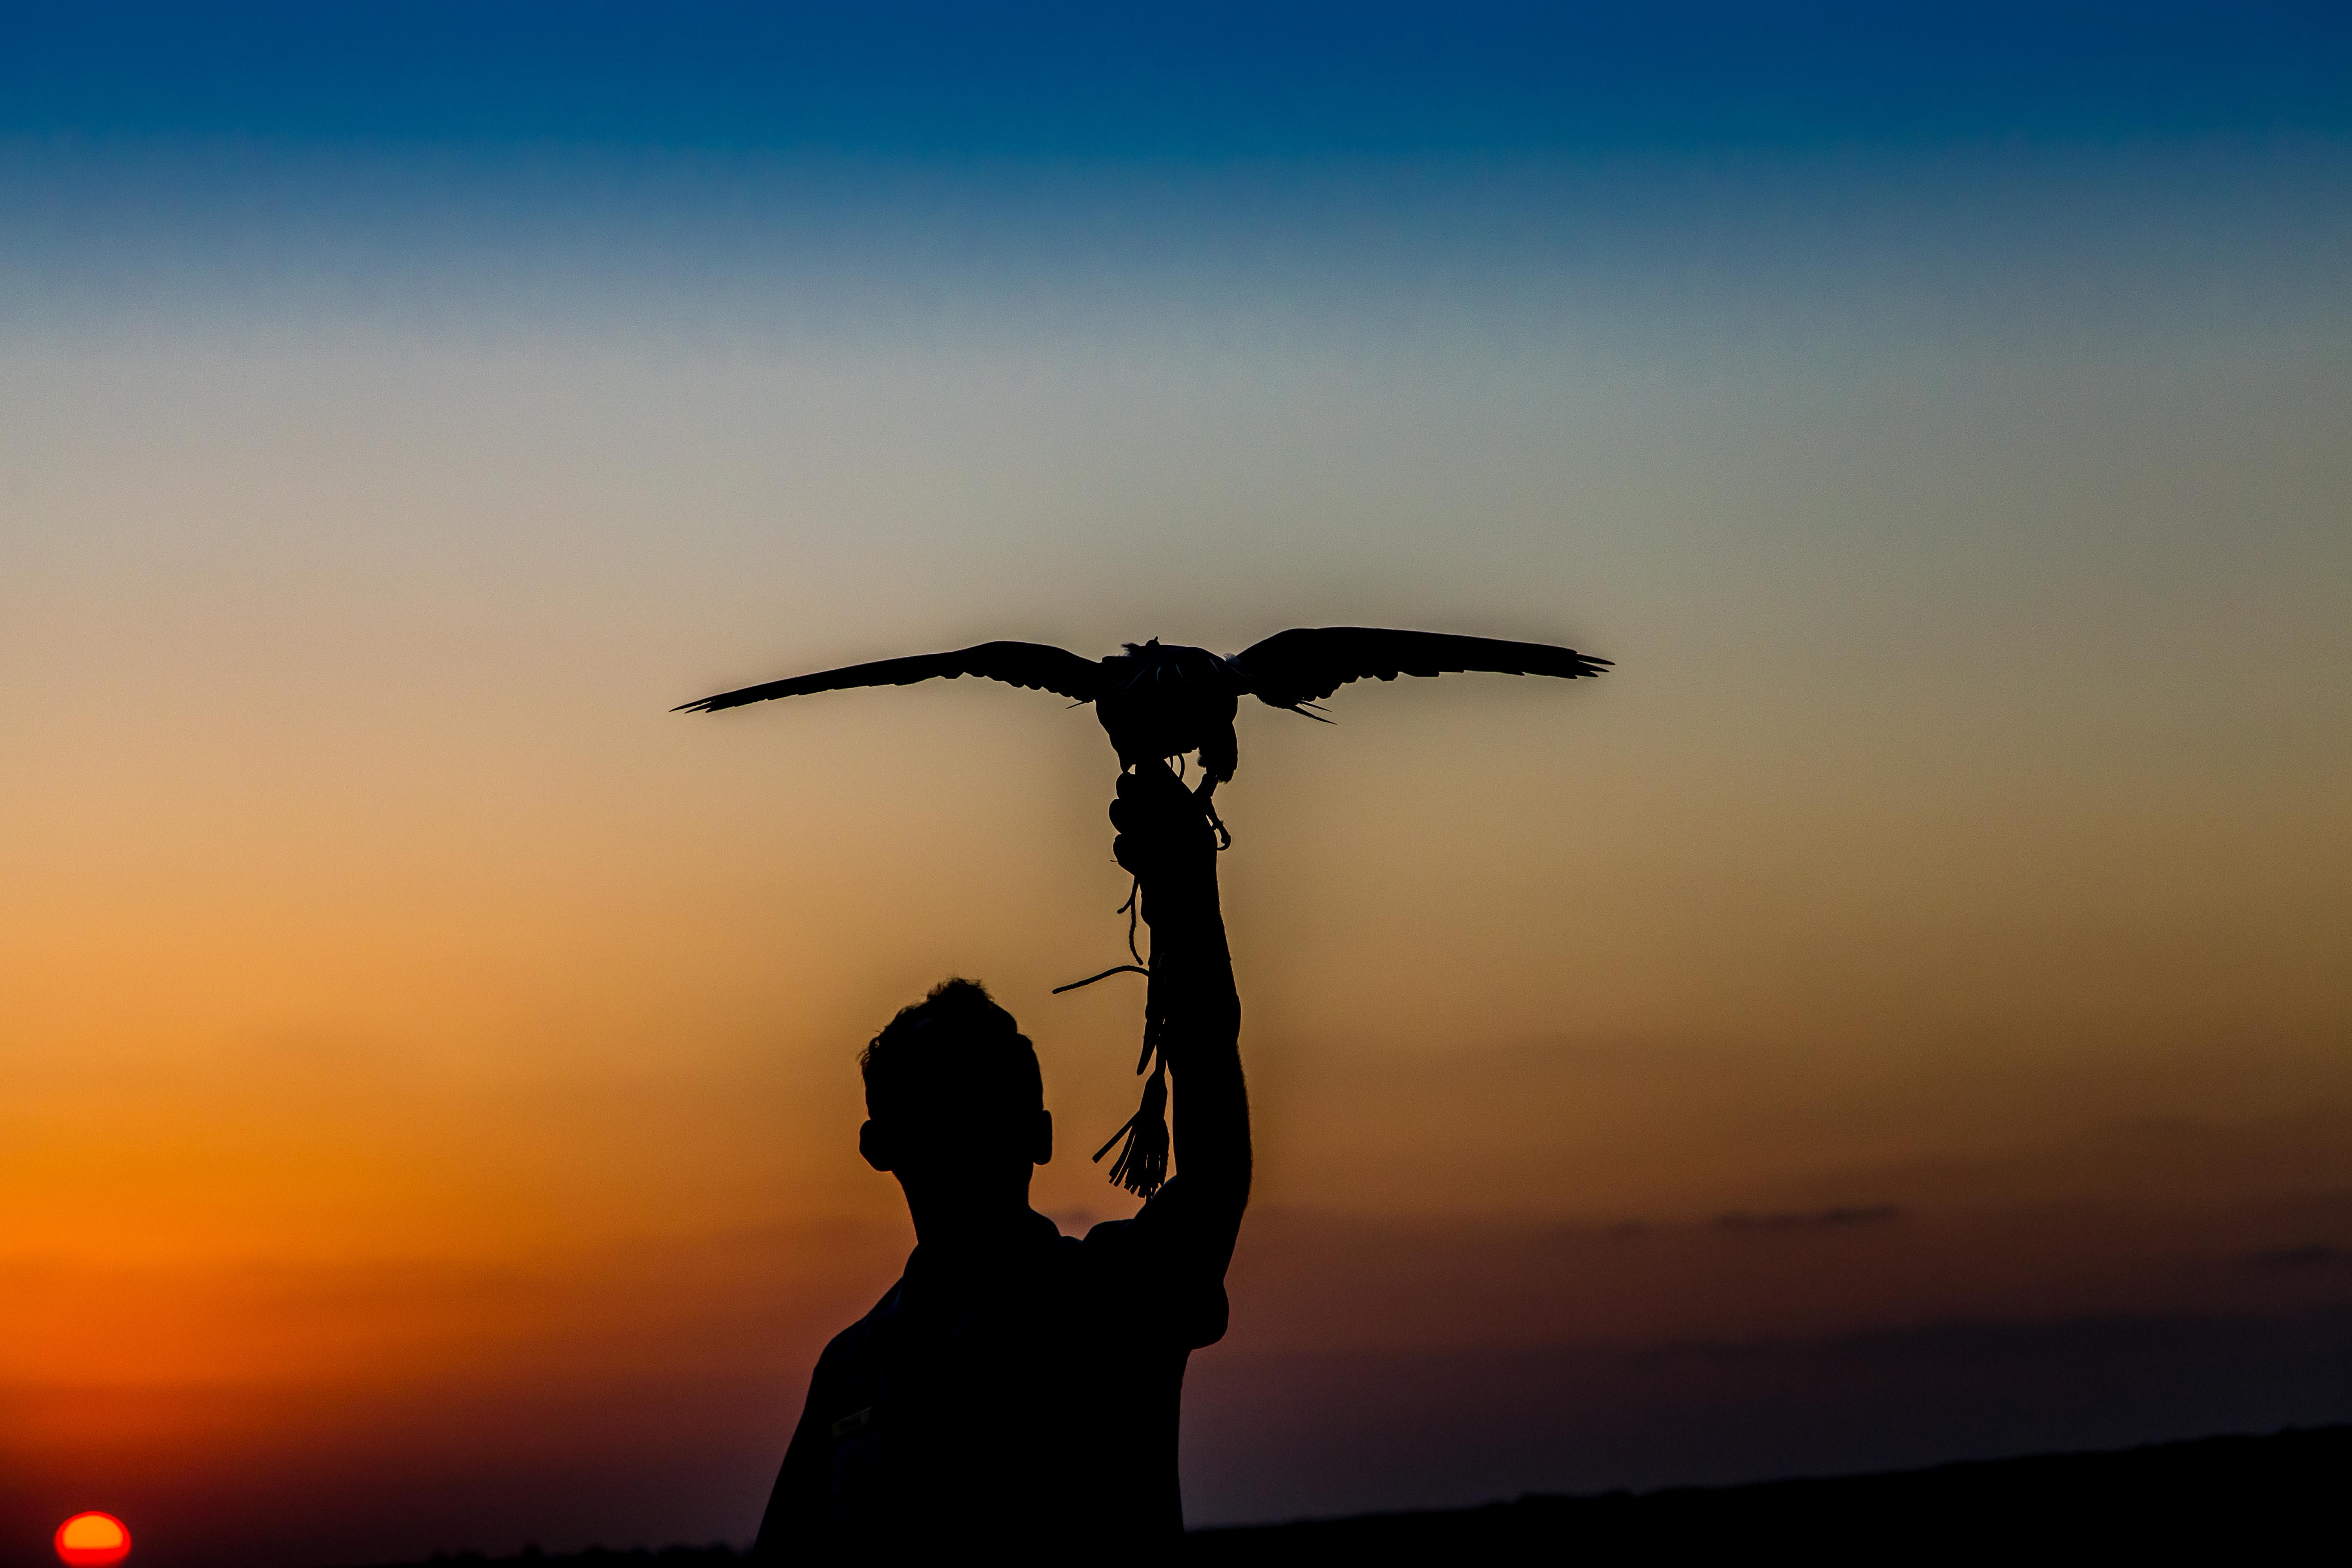 Sunset Falconer